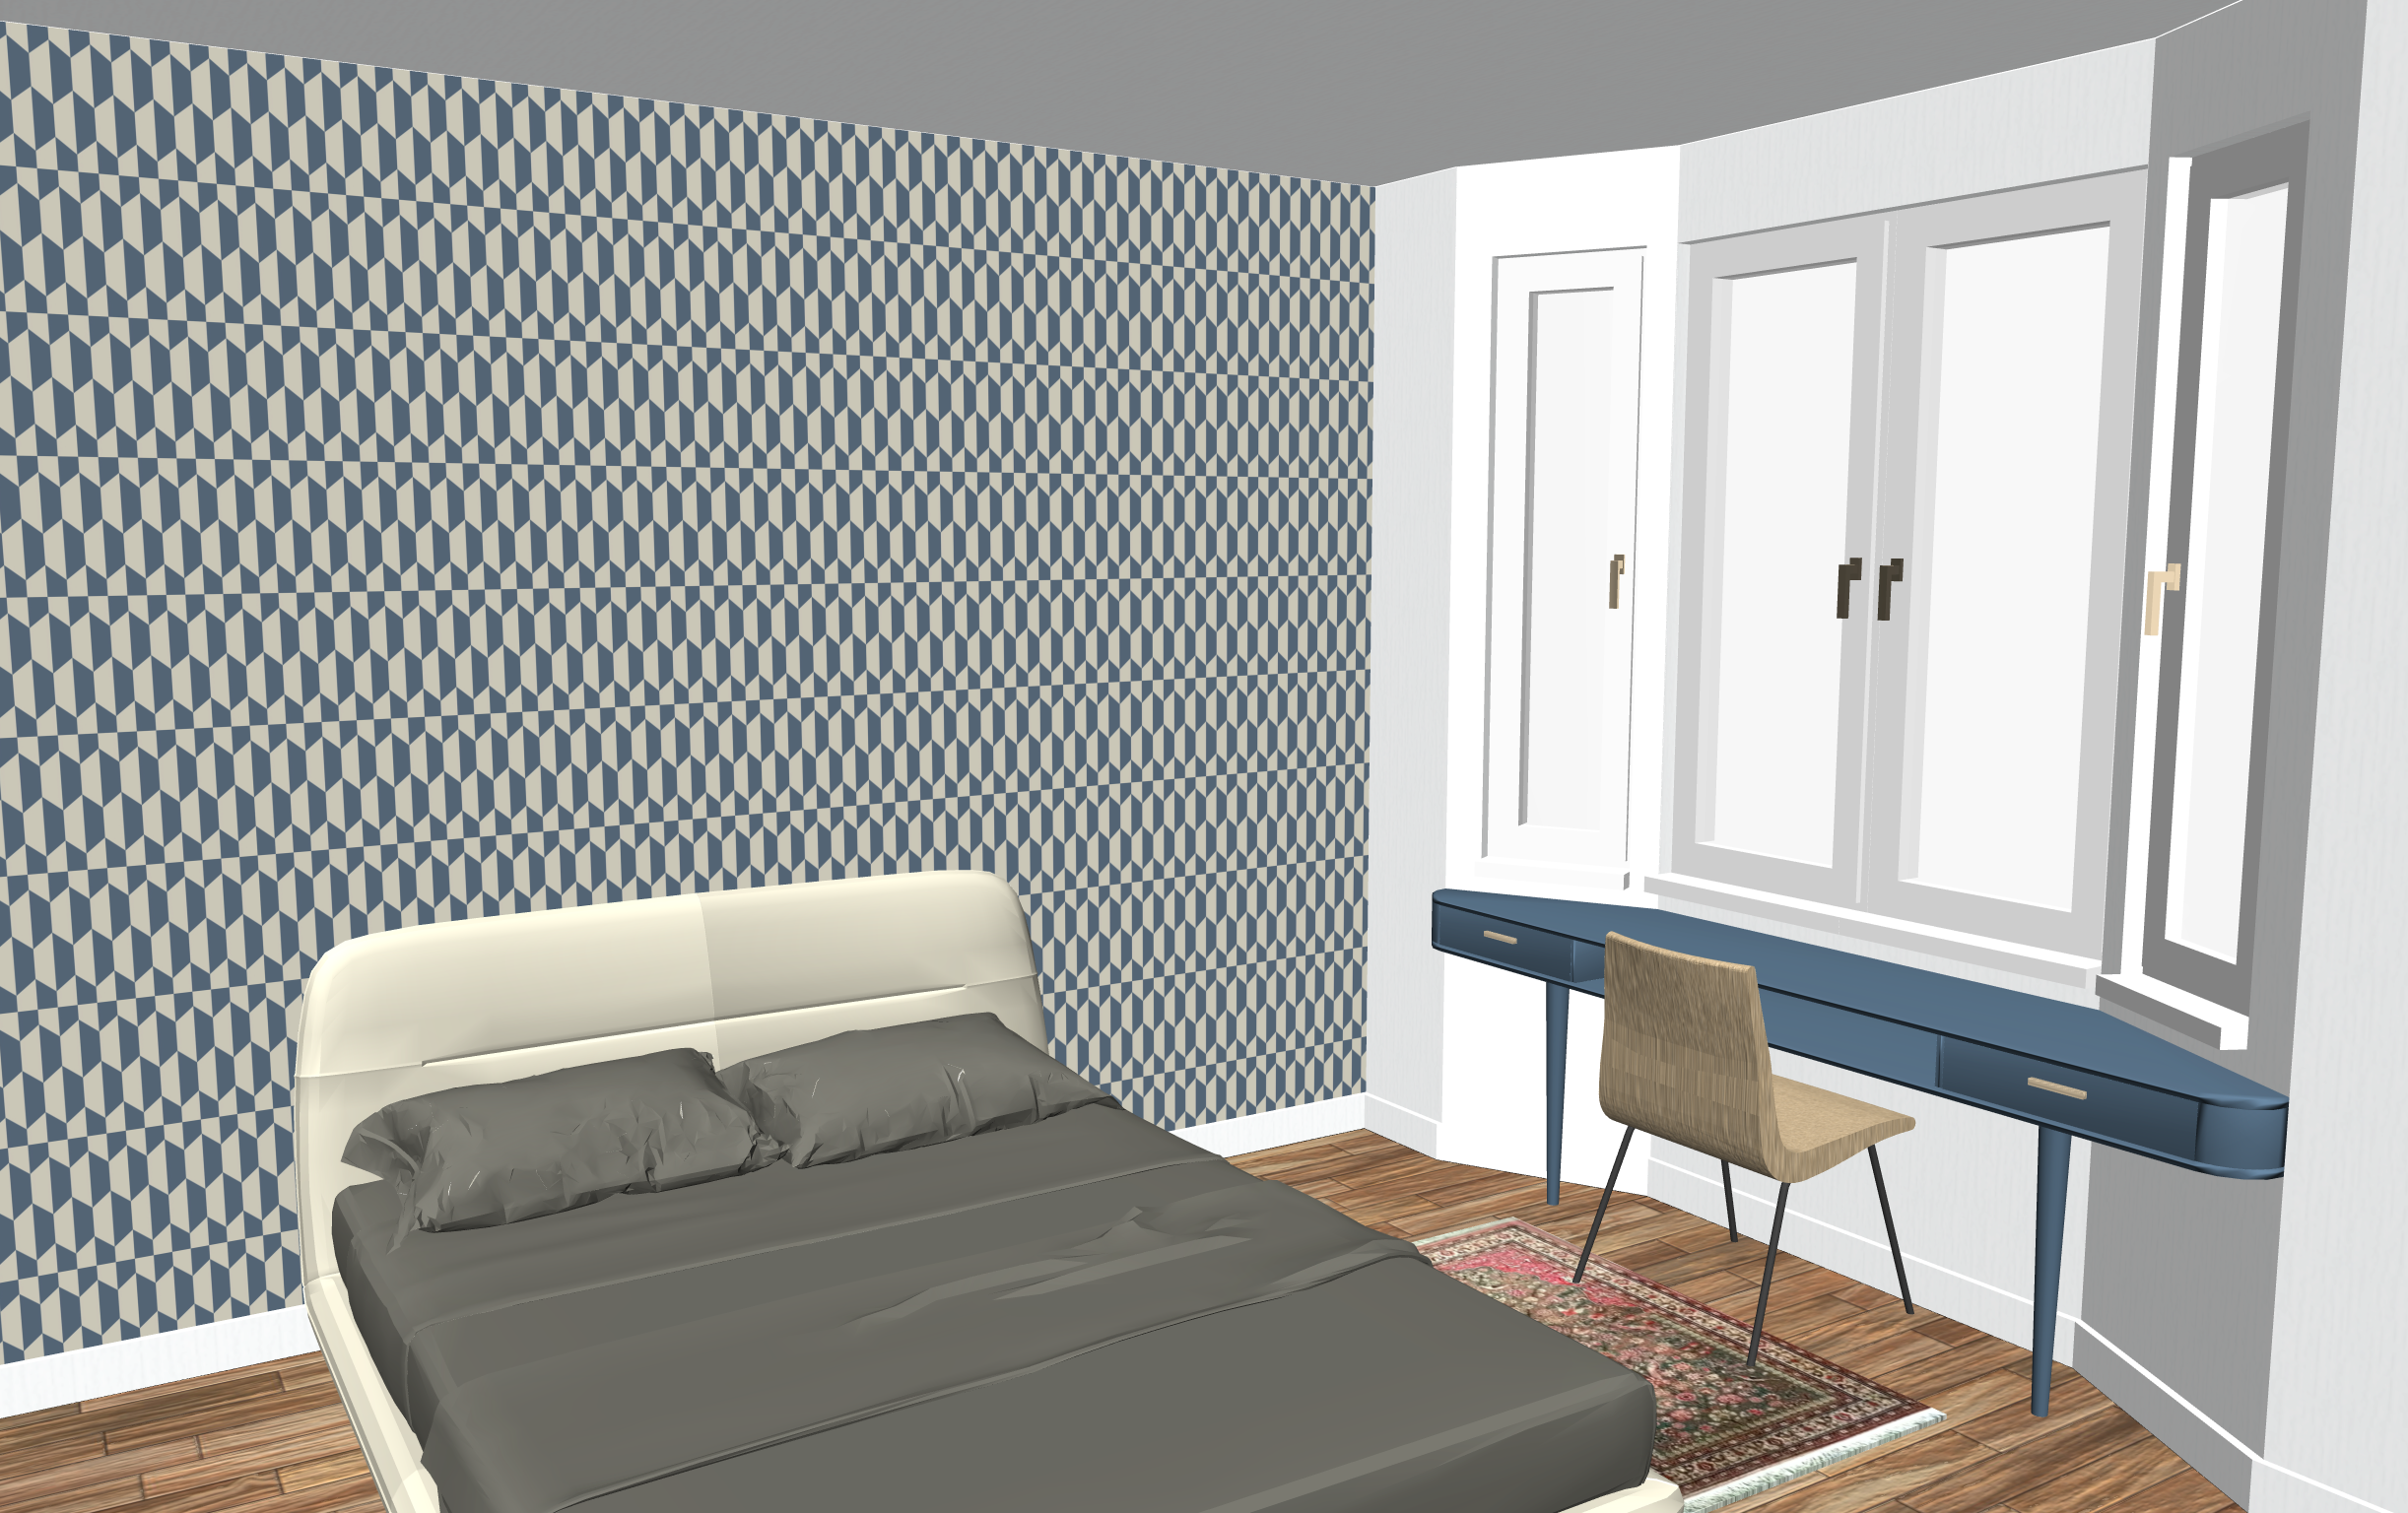 maison_bou_2019_neuilly_3d_12.png